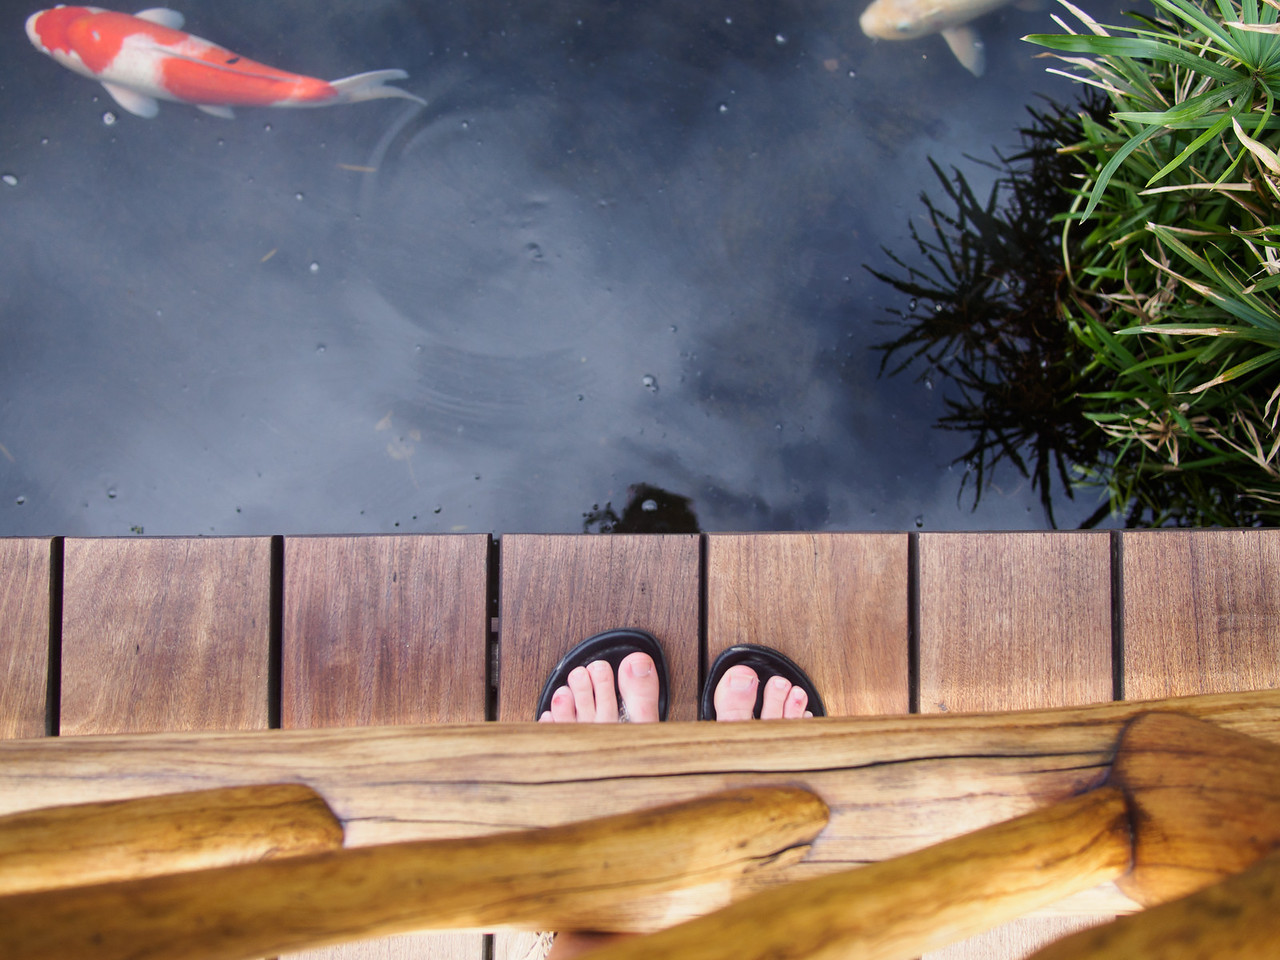 Feet and Fish, Hawaii